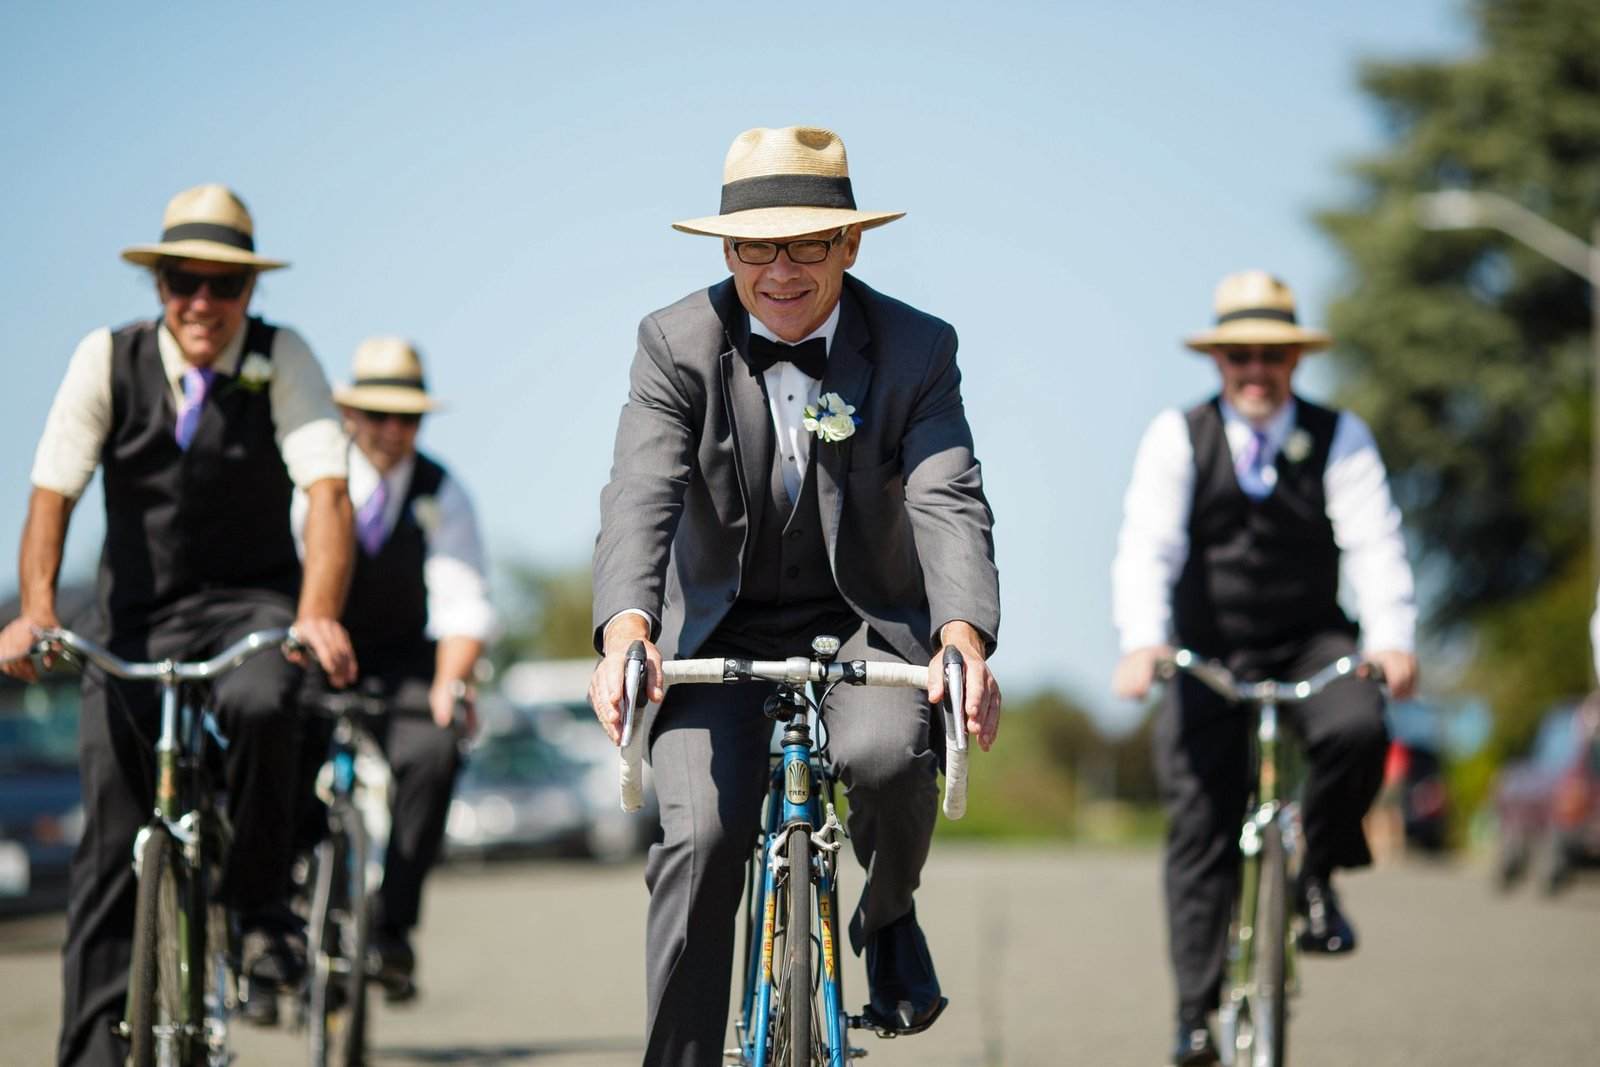 groomsmen-riding-bikes-to-ceremony